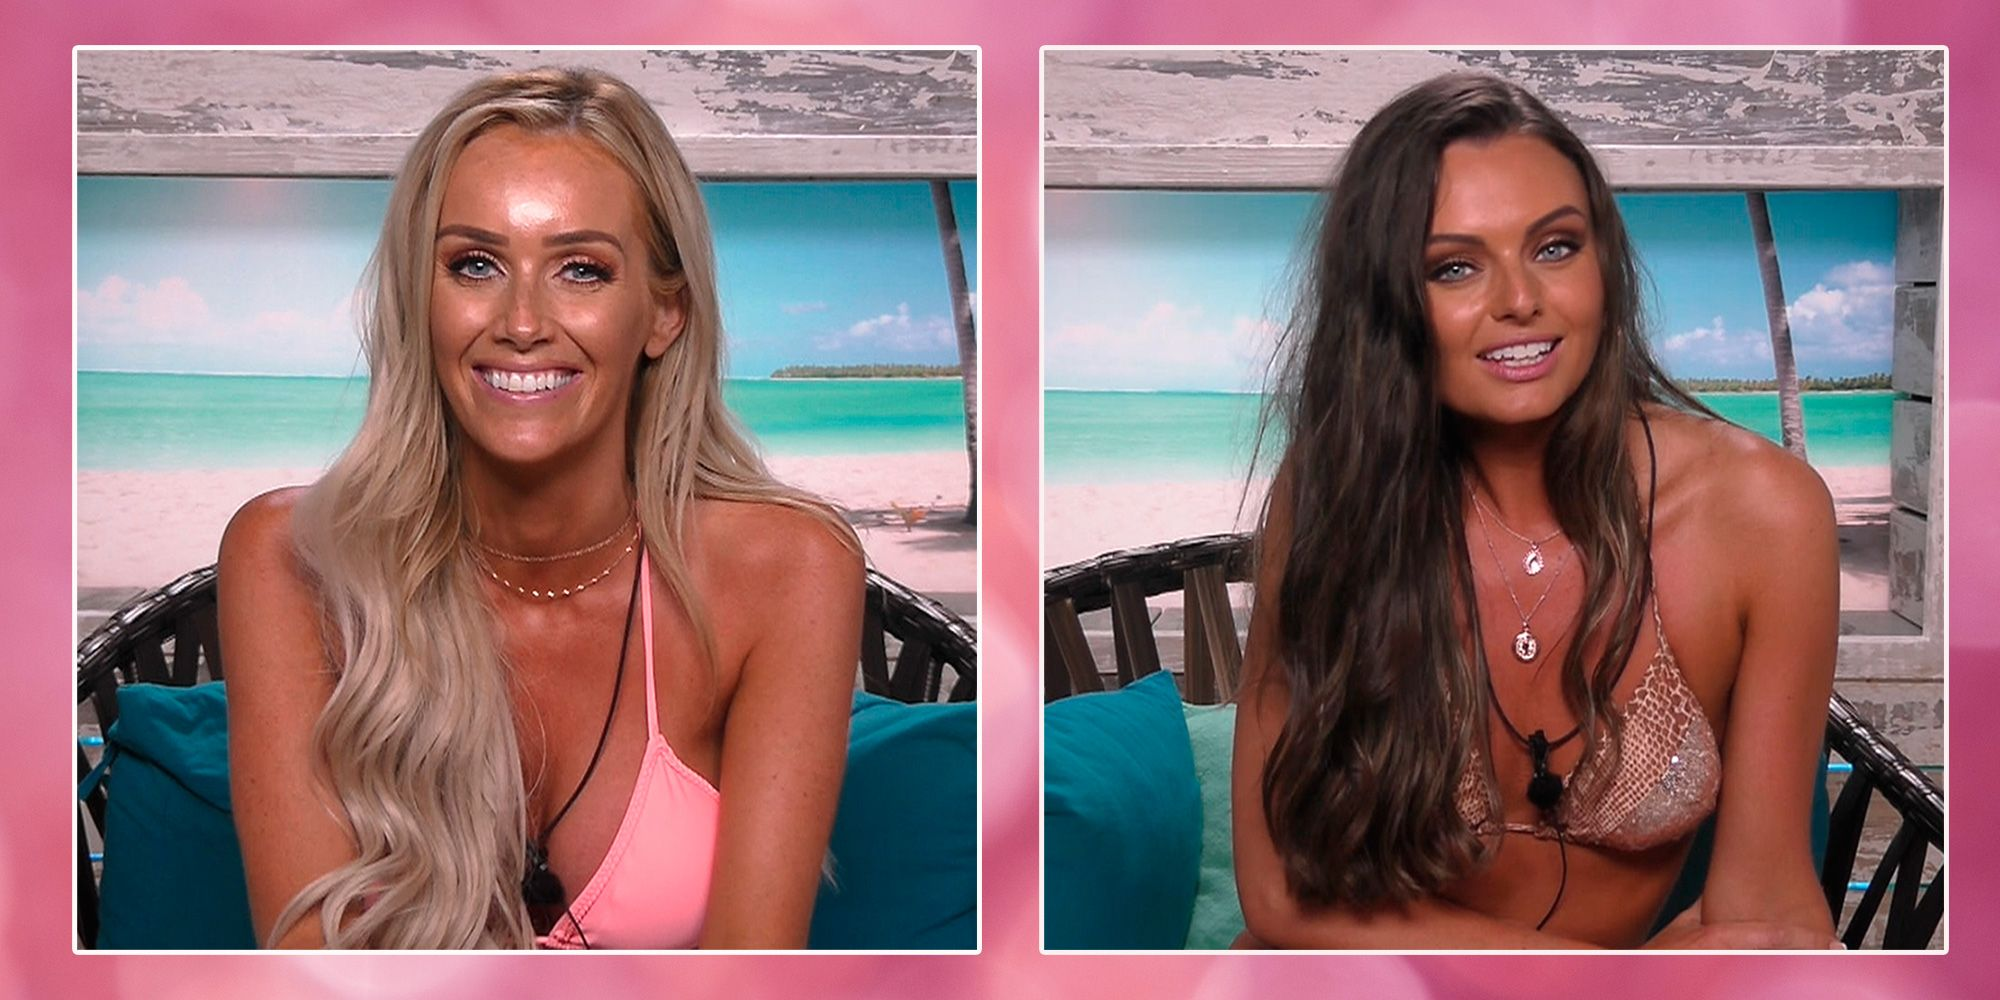 Why 'the Love Island effect' is so damaging for young women